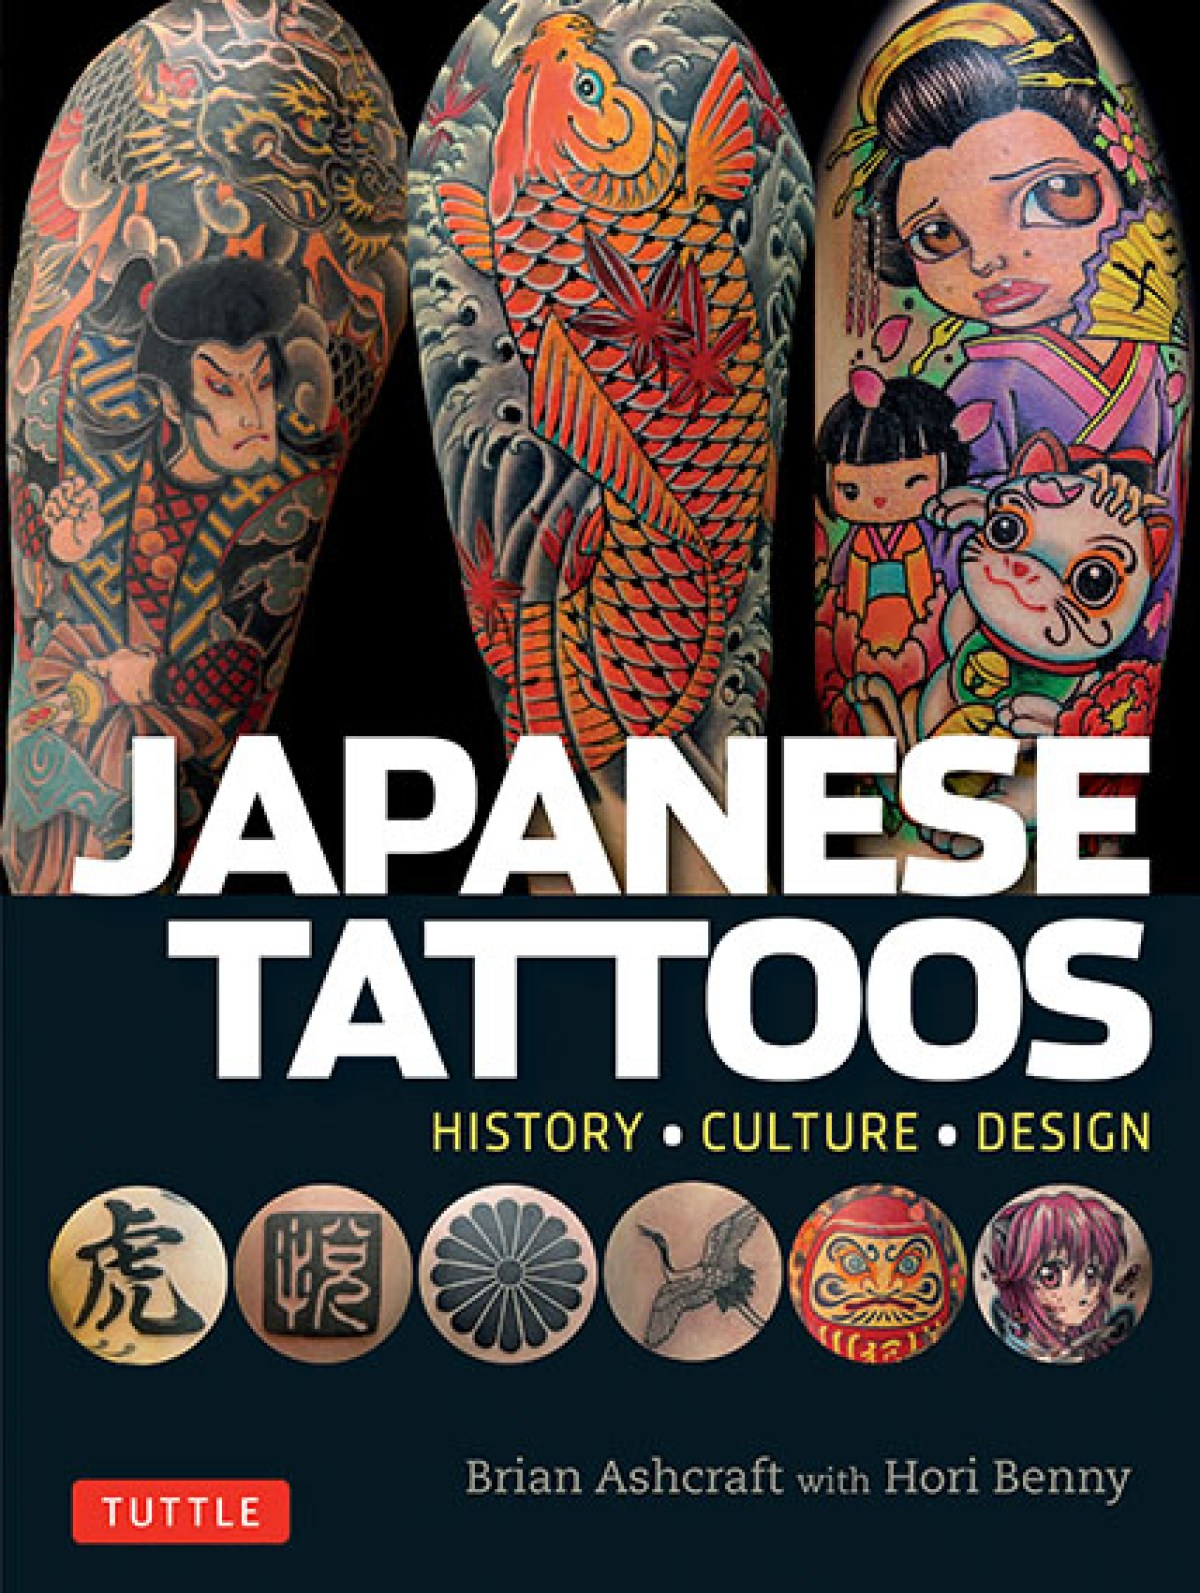 Jap Tattoos Jacket 9 Nov.indd